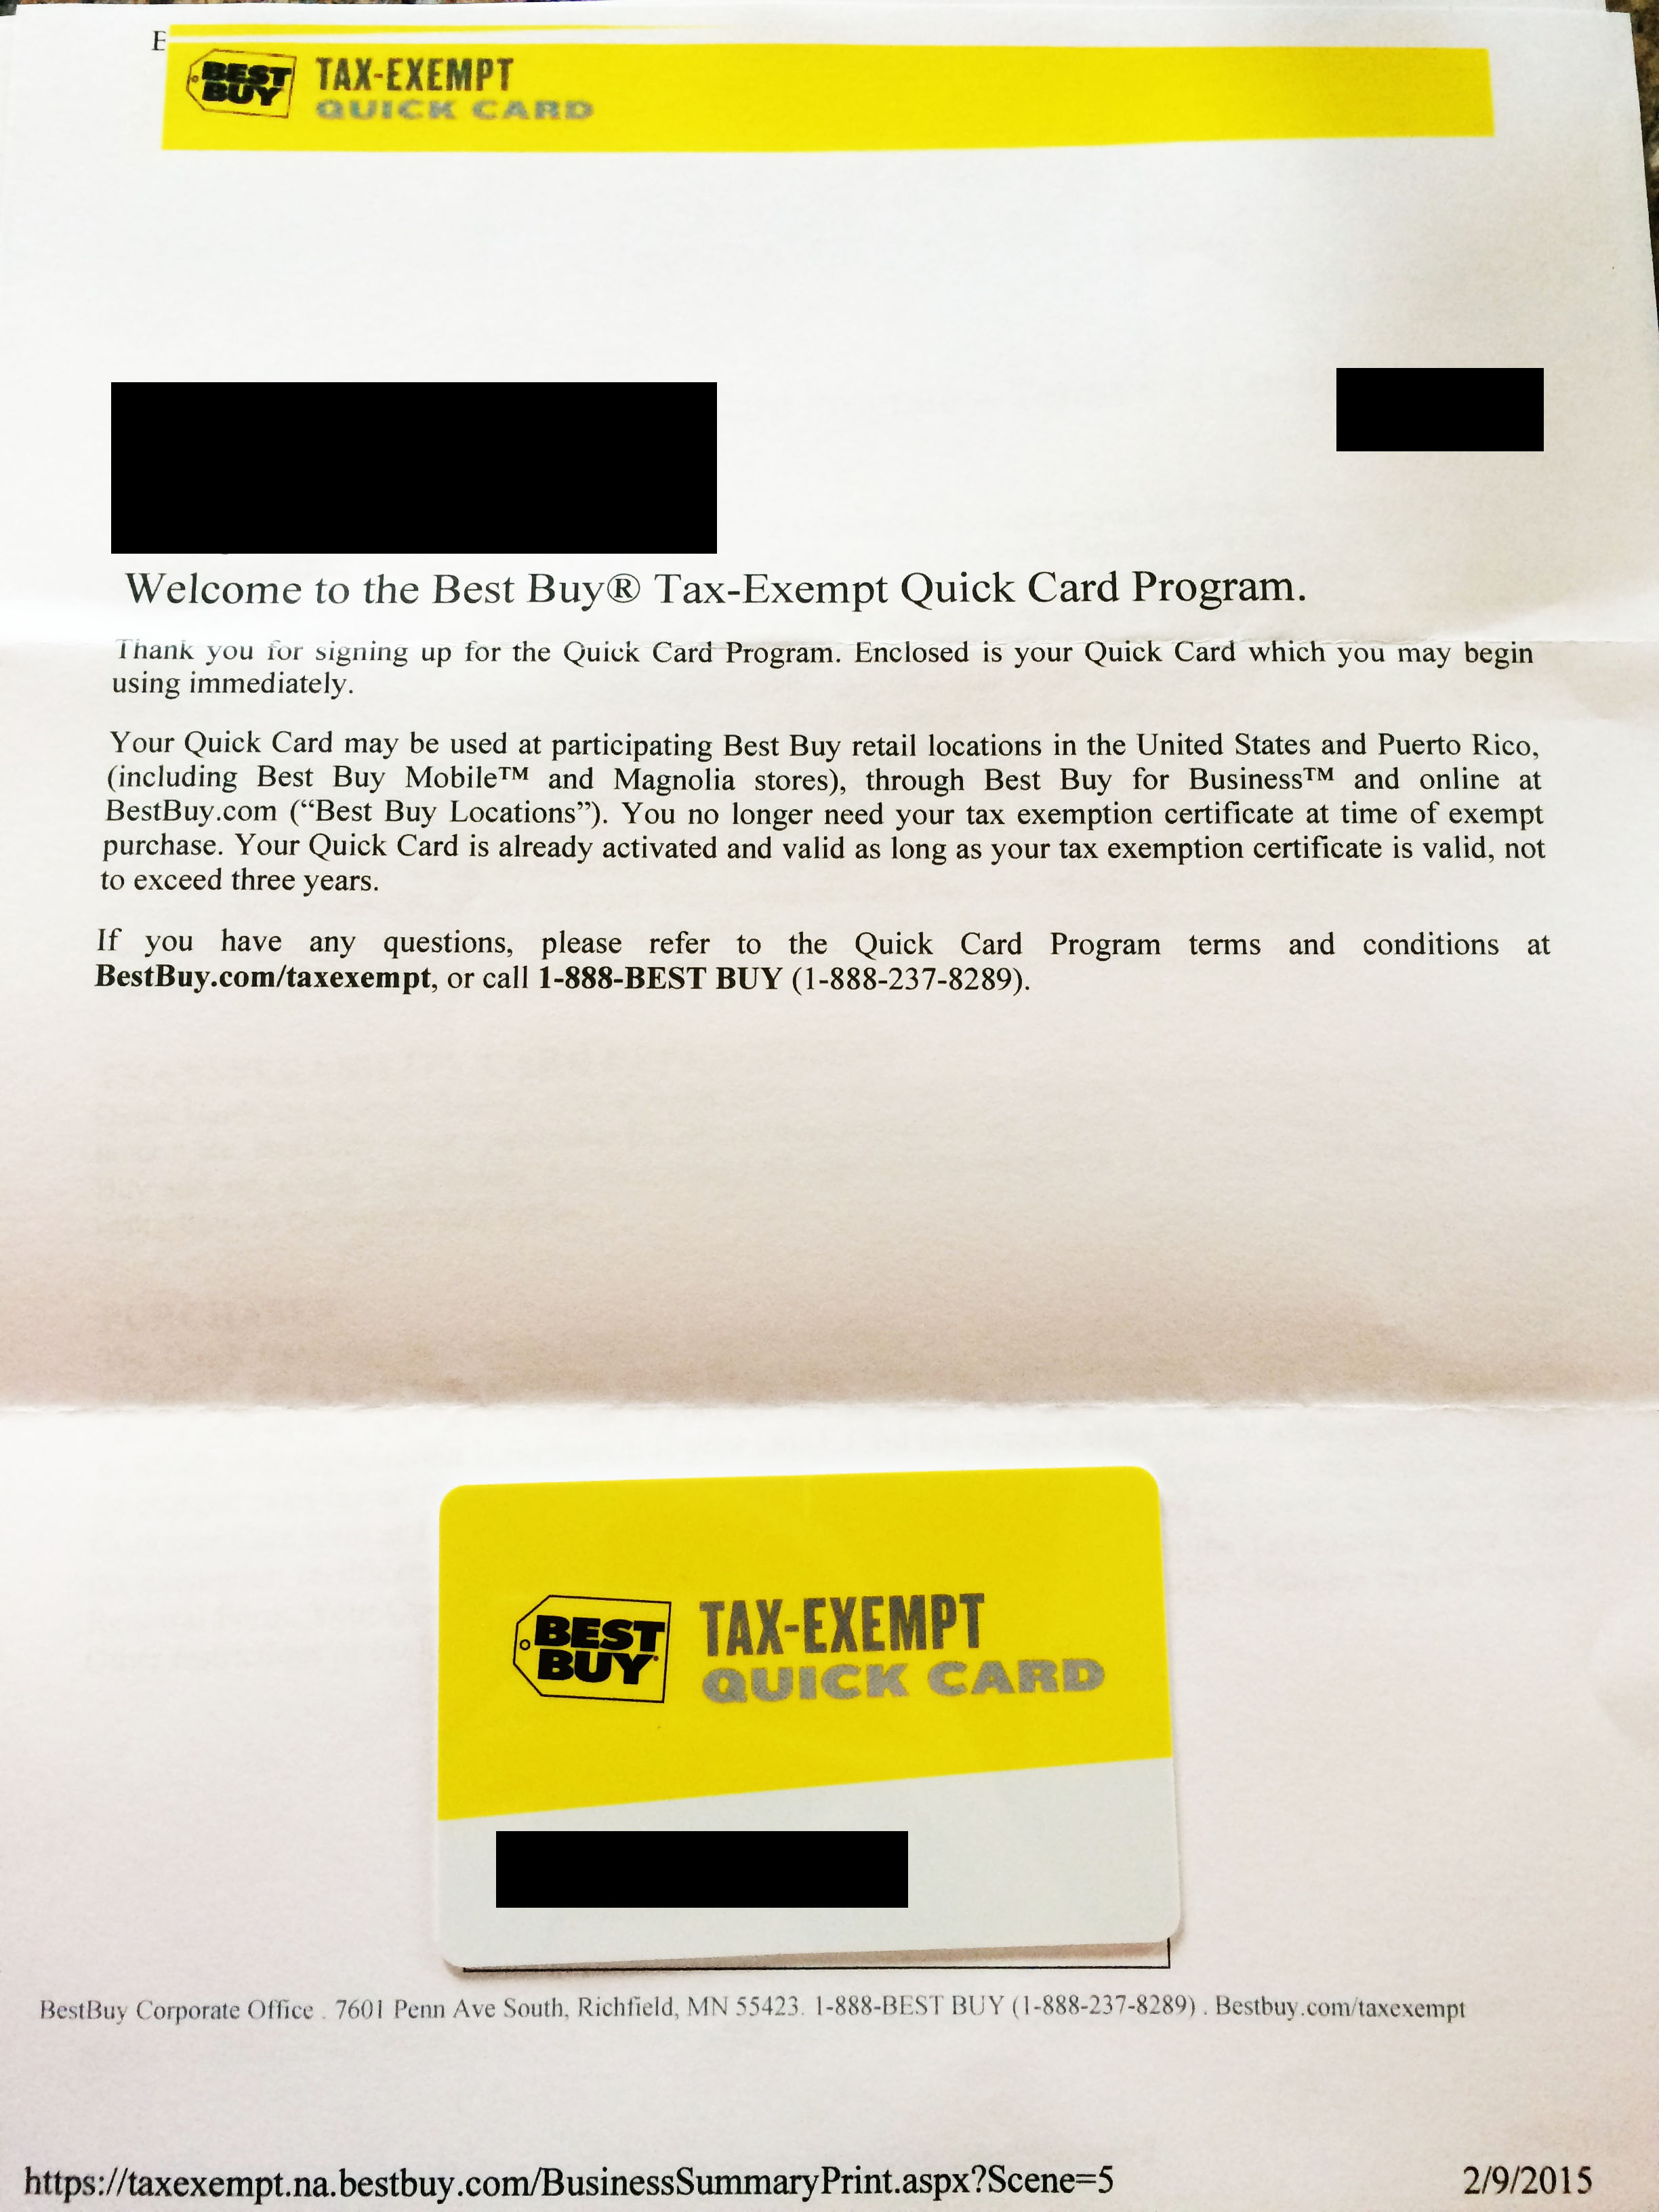 Favorite Buy Quick Card Letter How To Make Purchases Online Stores How Buy Open Box Return Policy 2016 Buy Canada Open Box Return Policy Retail dpreview Best Buy Open Box Return Policy